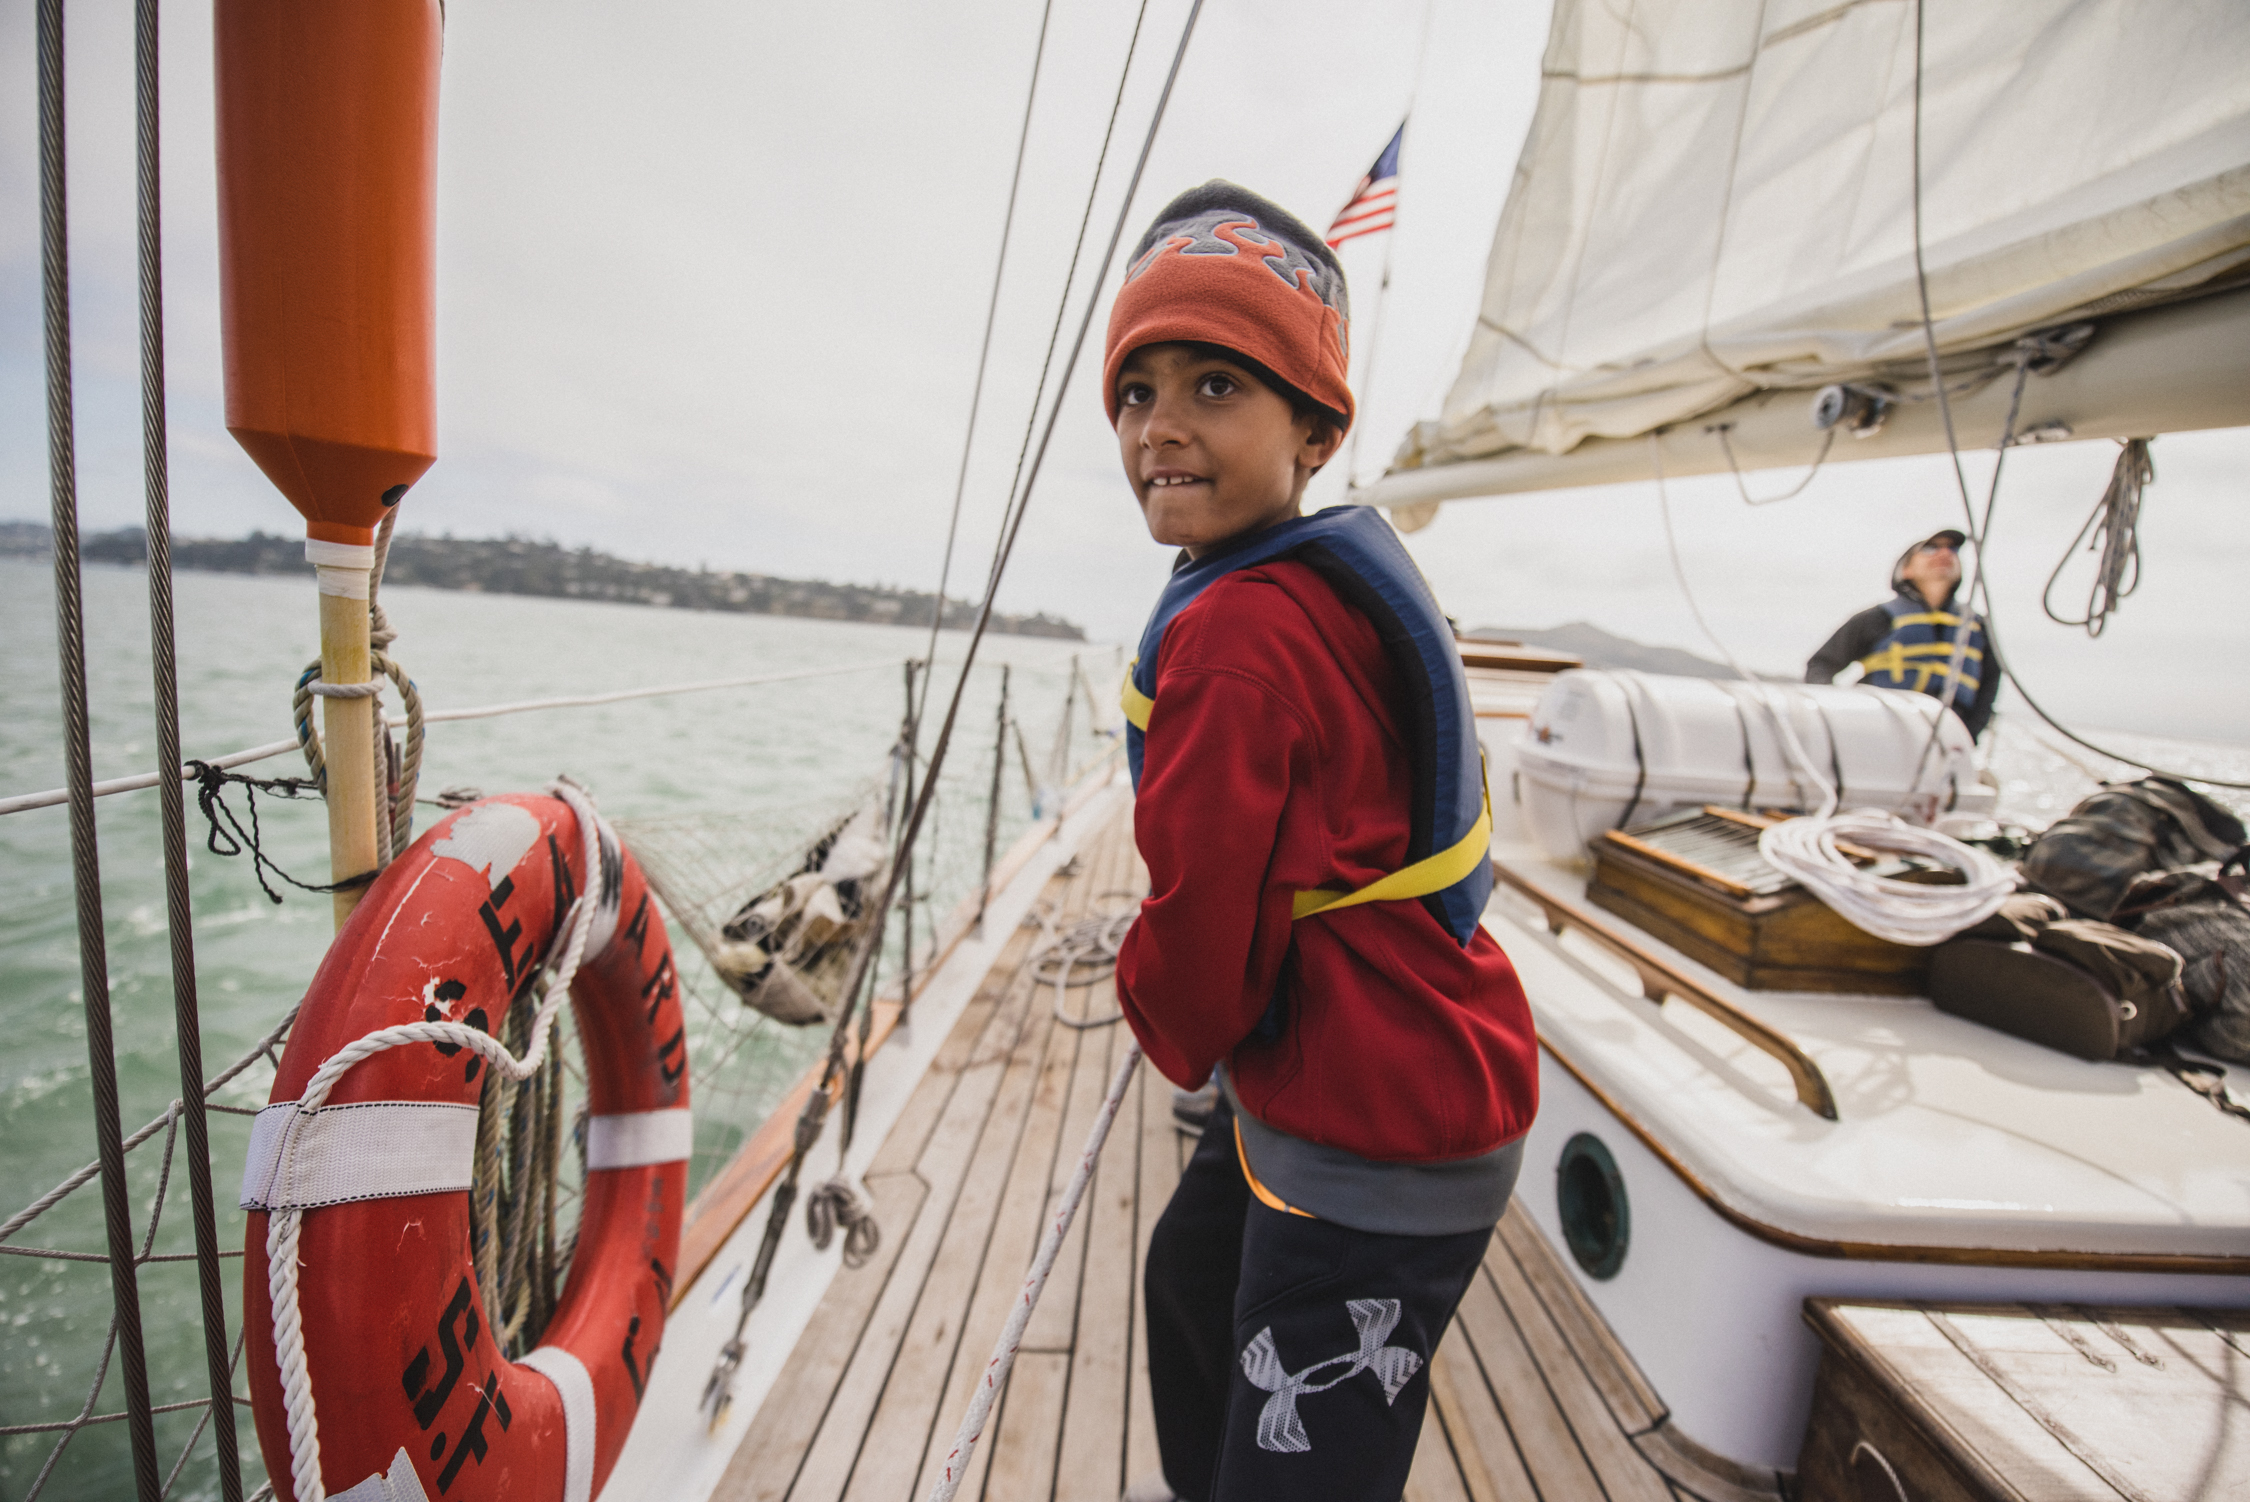 Call of the Sea - San Francisco - Another Look - 05.06.16-37.jpg